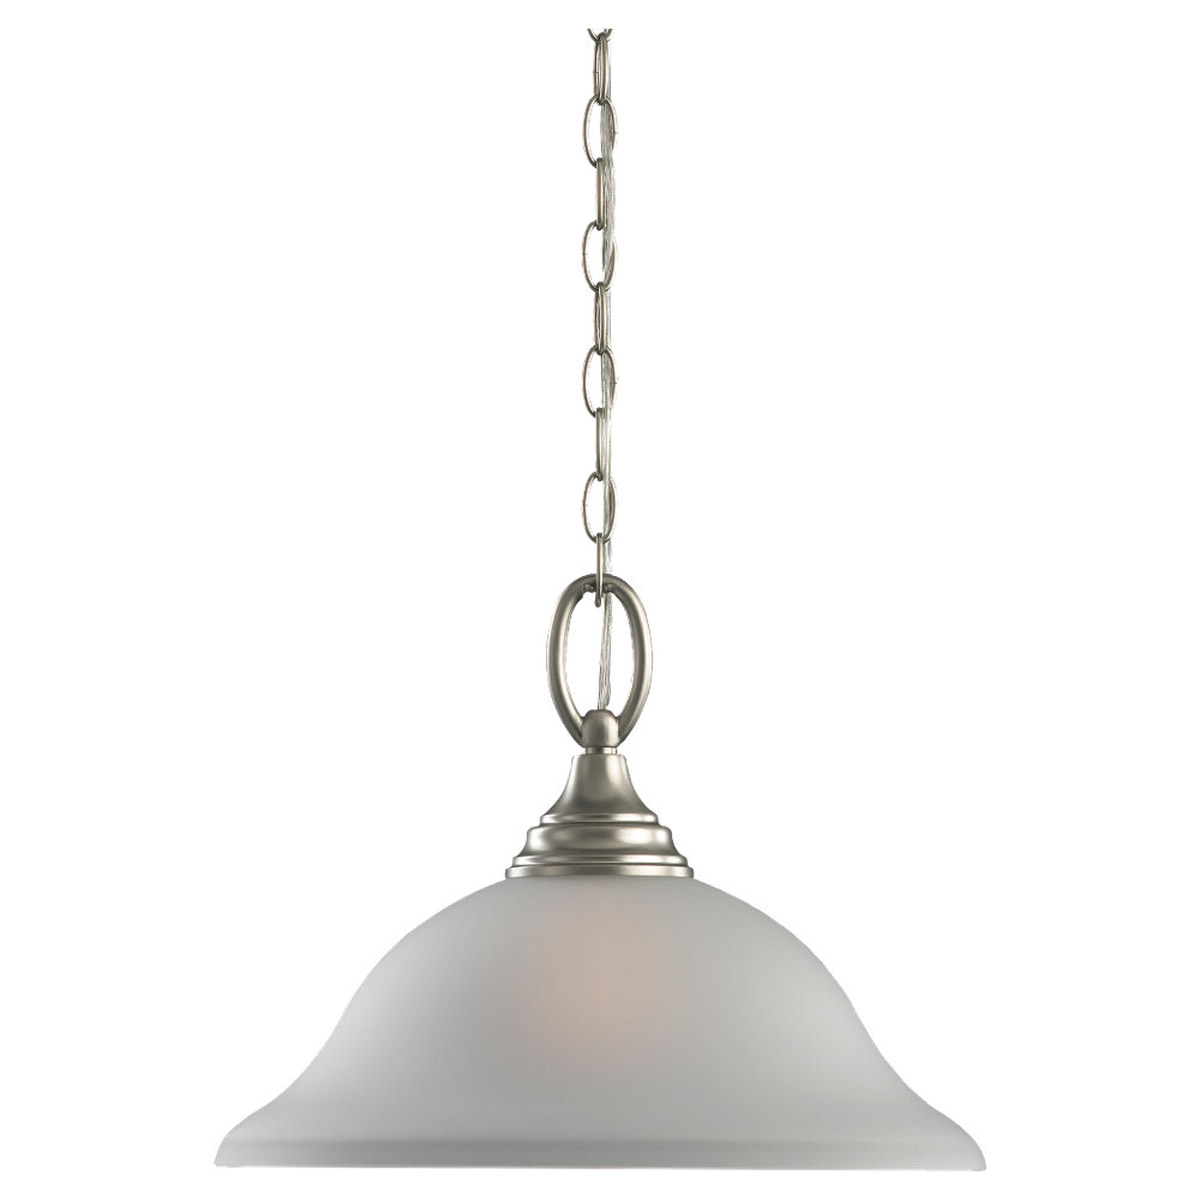 Sea Gull Lighting Wheaton 1 Light Pendant Down Light in Brushed Nickel 65625BLE-962 photo